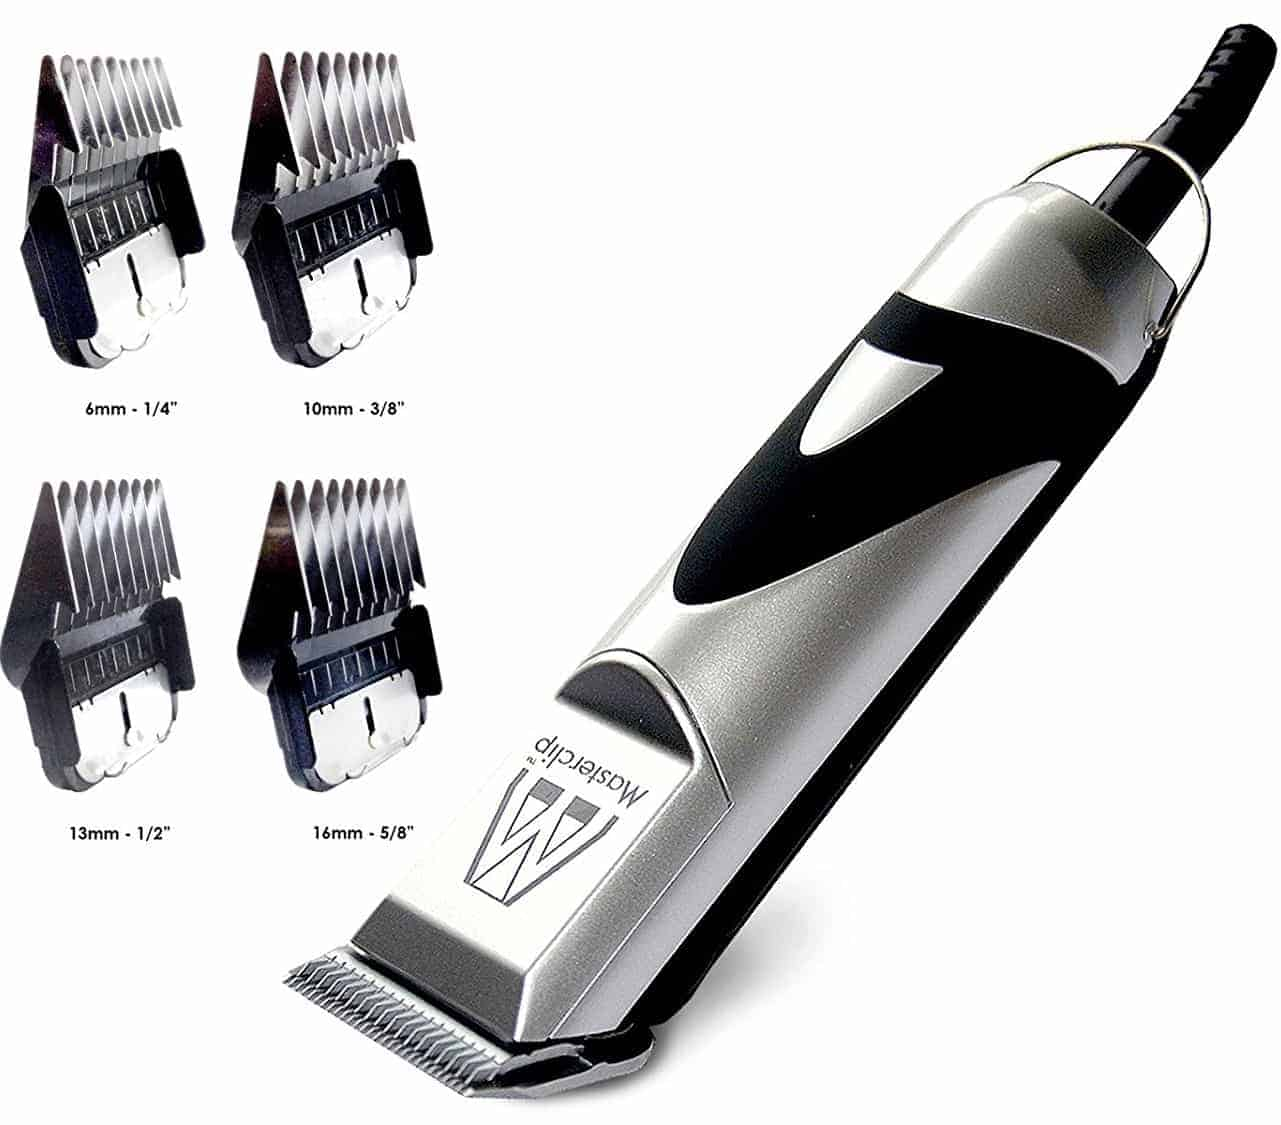 Best Professional Dog Clippers - Masterclip